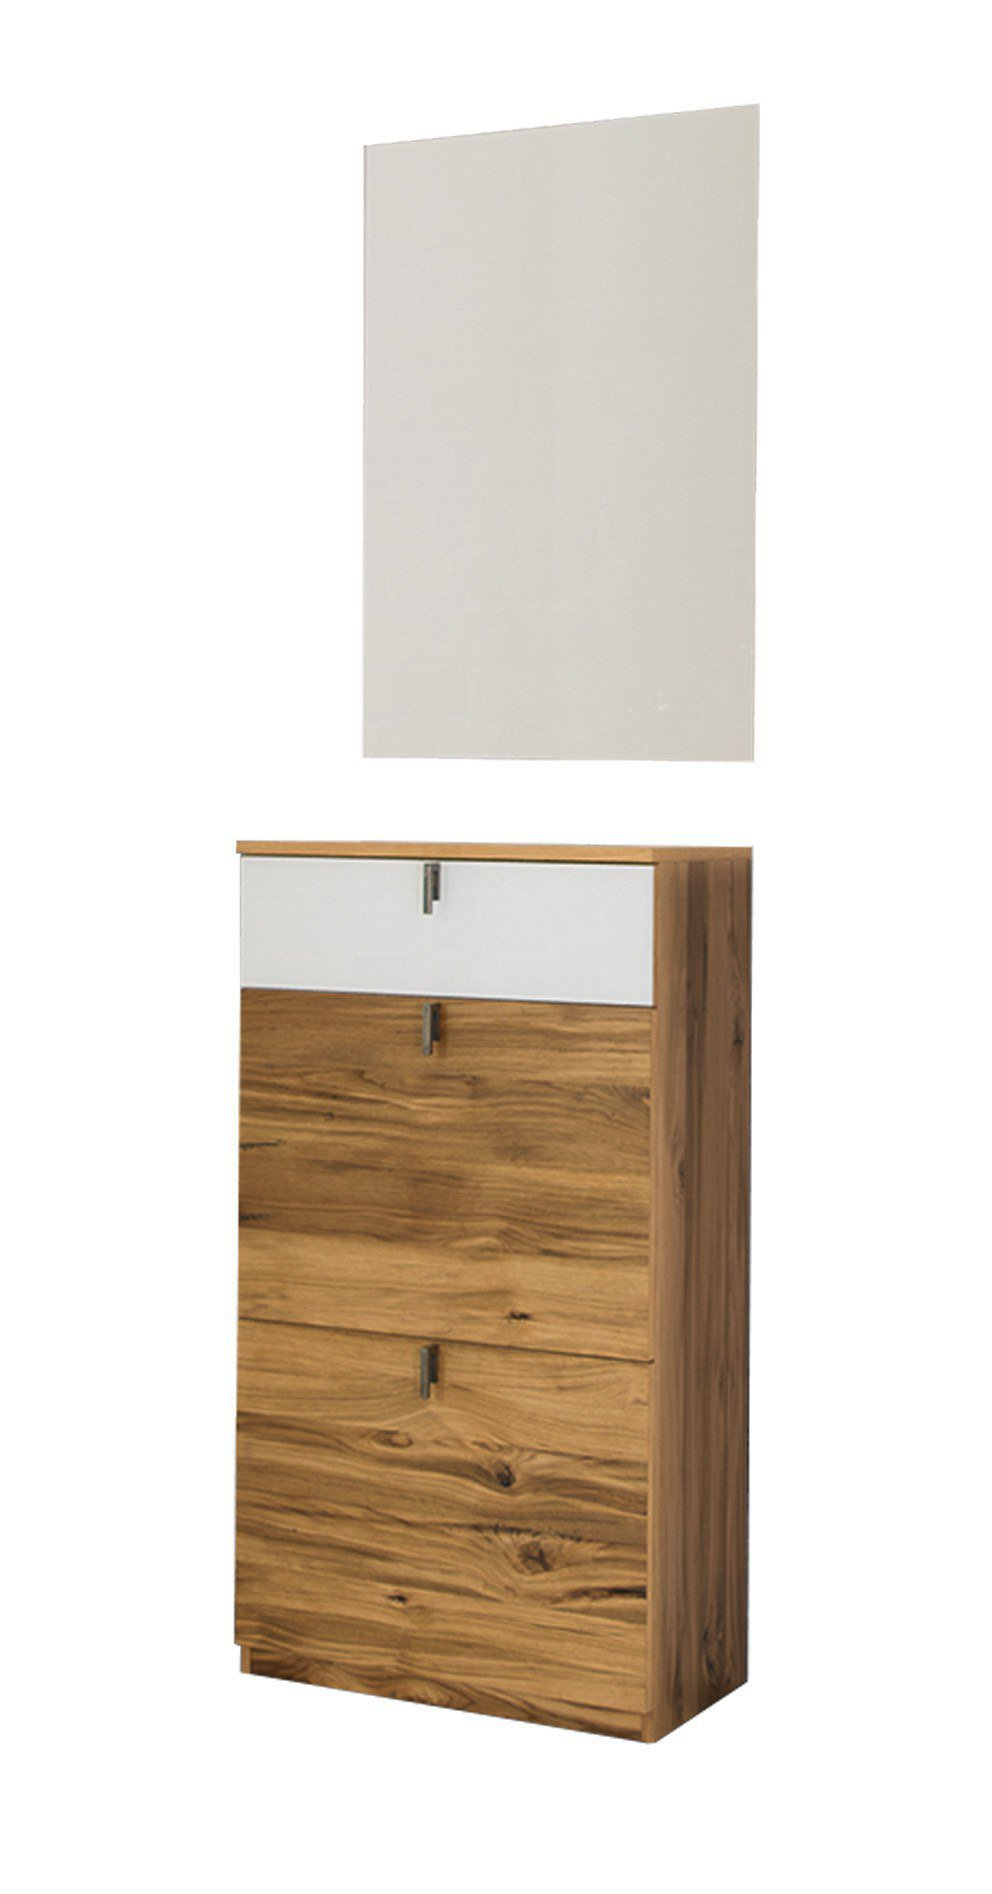 garderobe tekla in altholzeiche glas wei von skandinavische m bel m bel letz ihr online shop. Black Bedroom Furniture Sets. Home Design Ideas